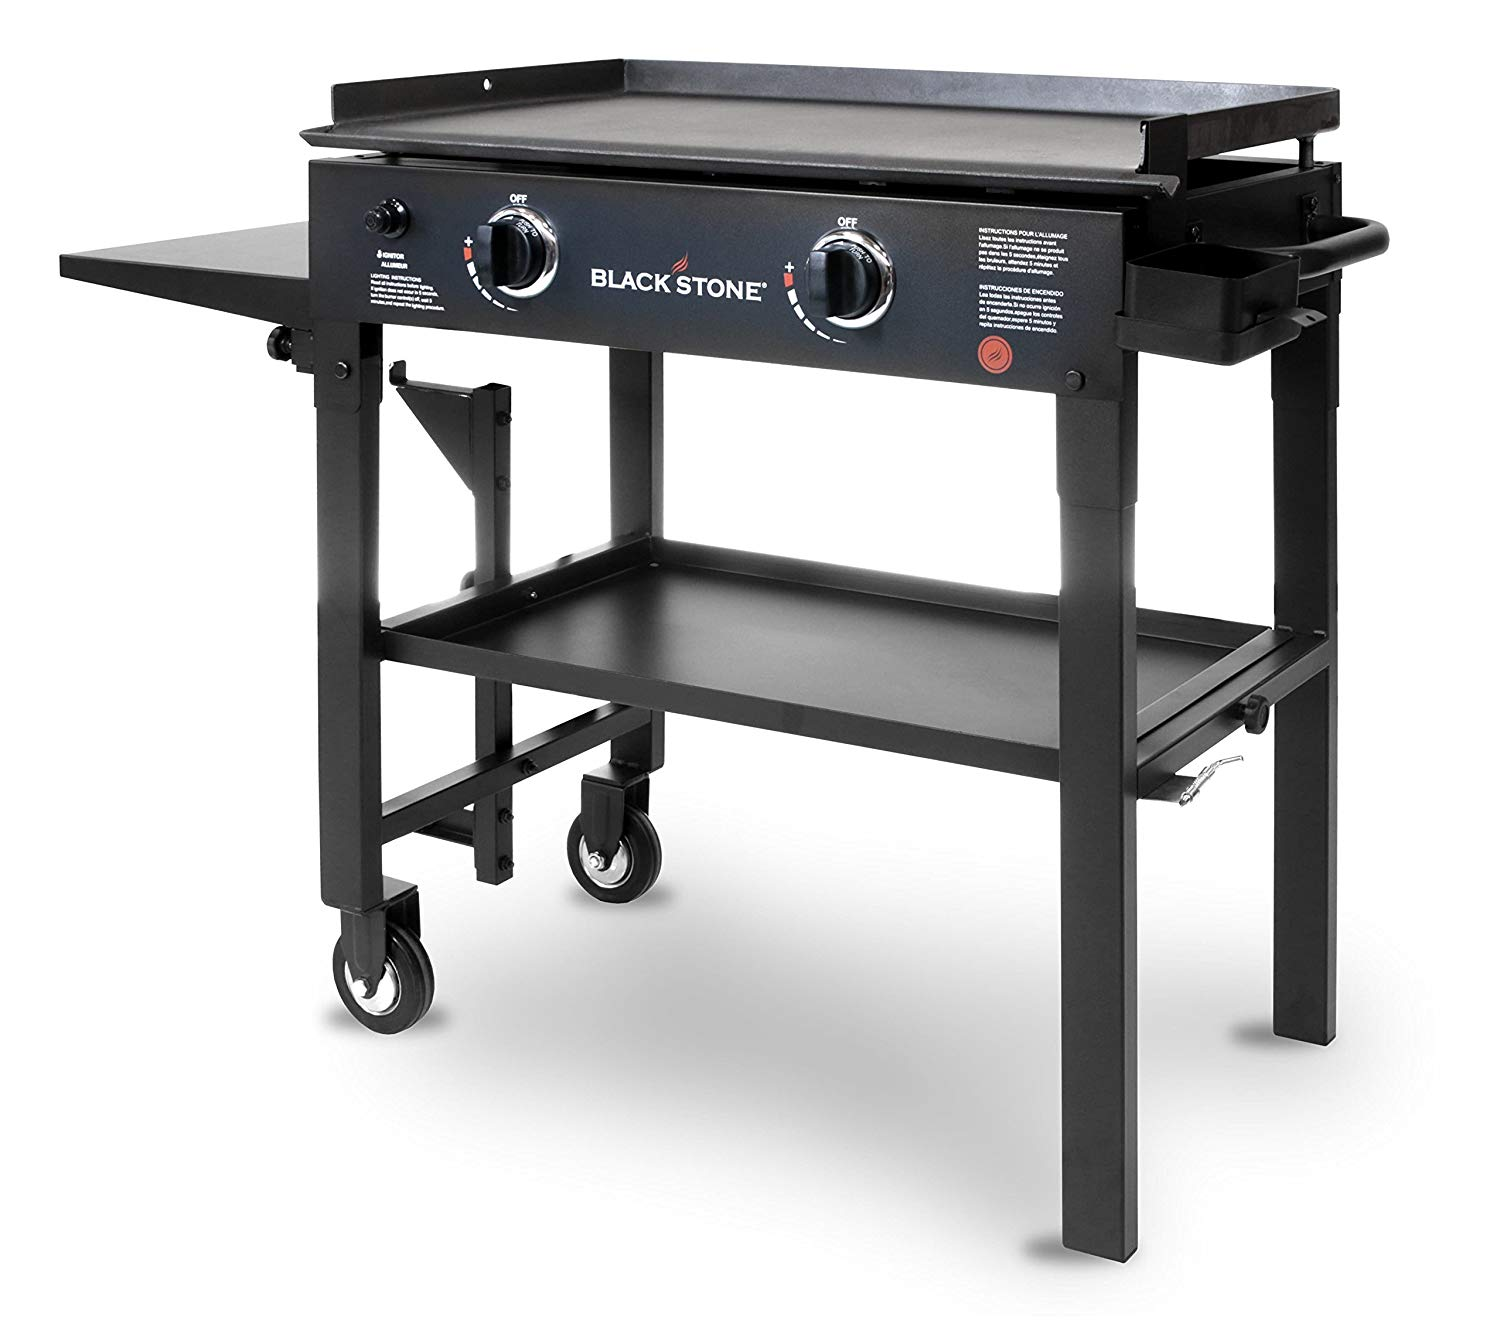 Blackstone 28 inch Outdoor Flat Top Gas Grill Griddle Station - Blackstone Griddle